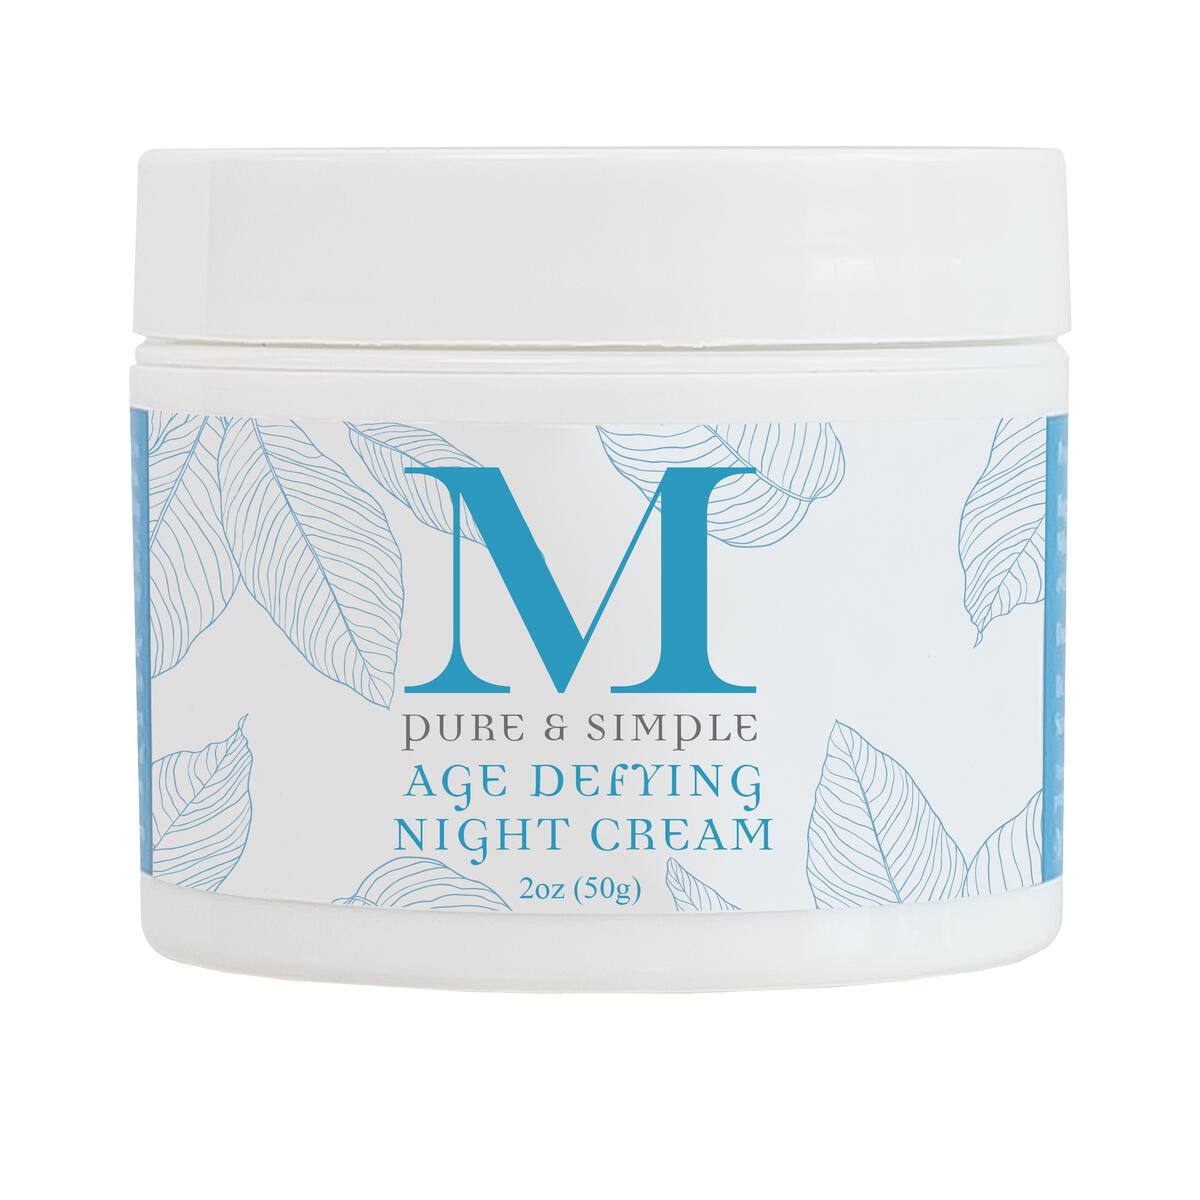 Anti Aging Face Moisturizer for Women, Age-Defying Night Cream for Women & Men, Wrinkle Cream for Face Made with Double Helix Water & All Natural Ingredients Such as Coconut Oil And Vitamin E (2 Oz)…